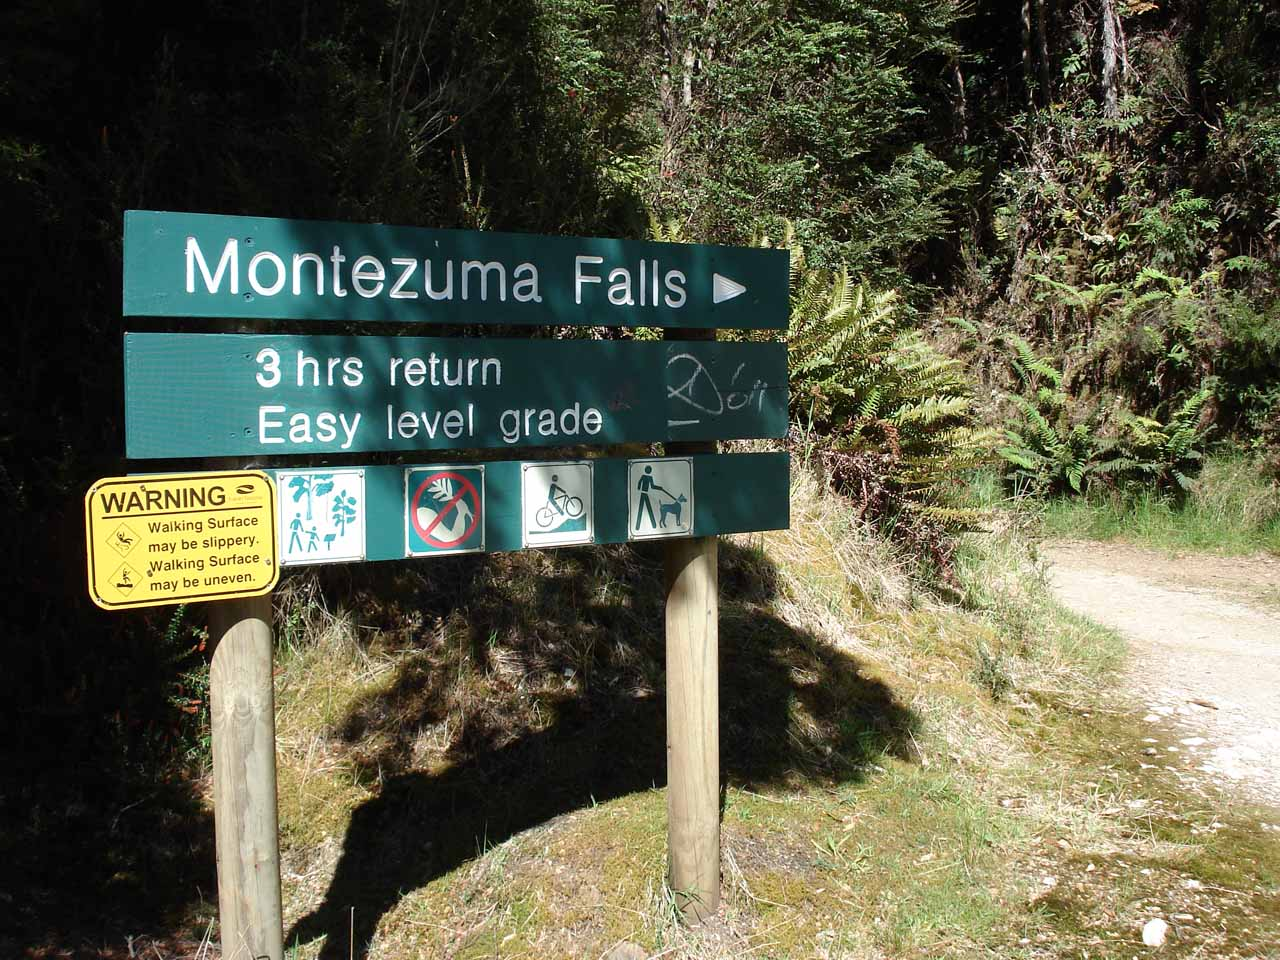 Trailhead sign telling us what would be required to visit Montezuma Falls